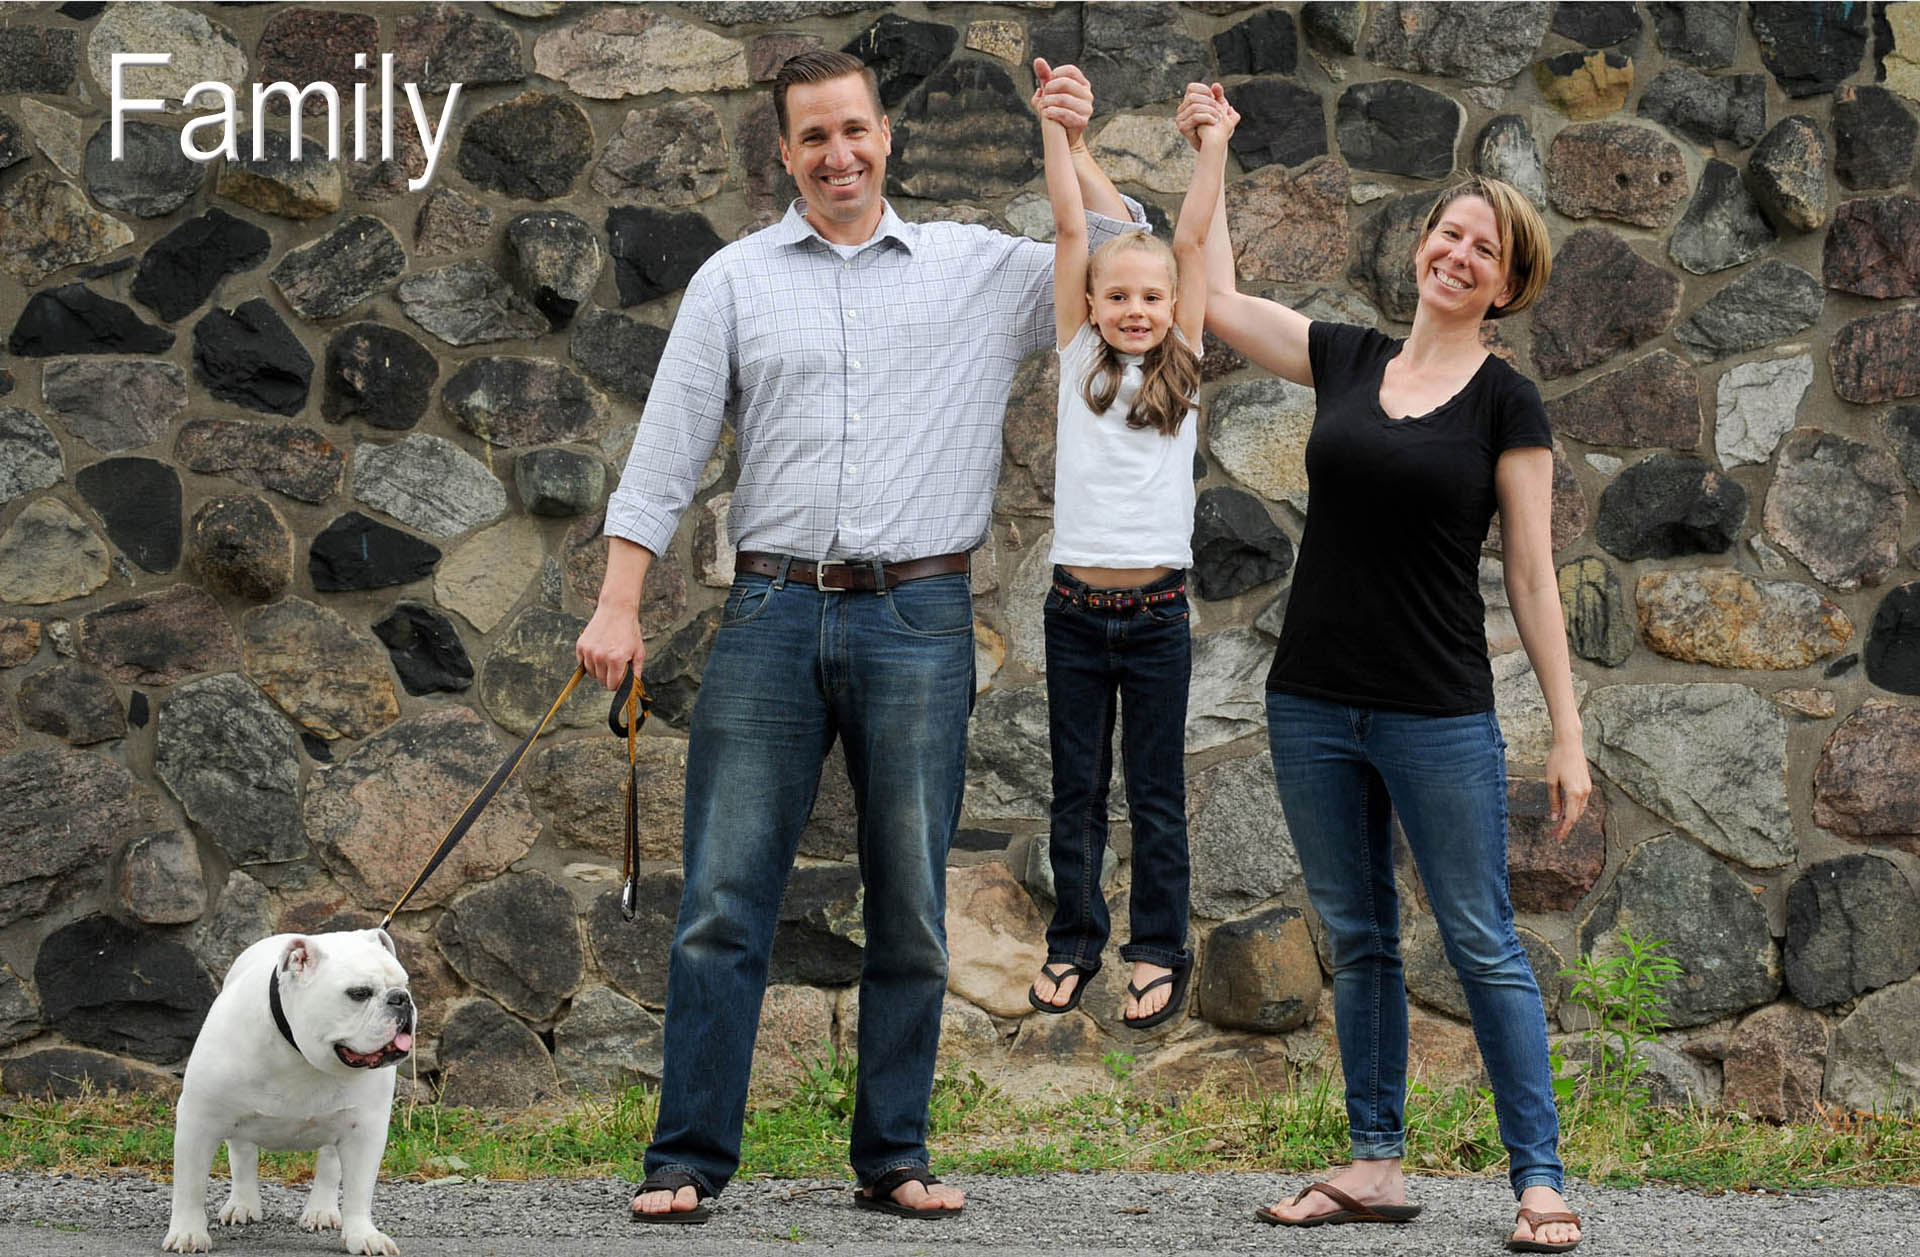 A metro Detroit area couple celebrate the arrival of their adopted daughter with a fun, happy family photo downtown Detroit, Michigan.